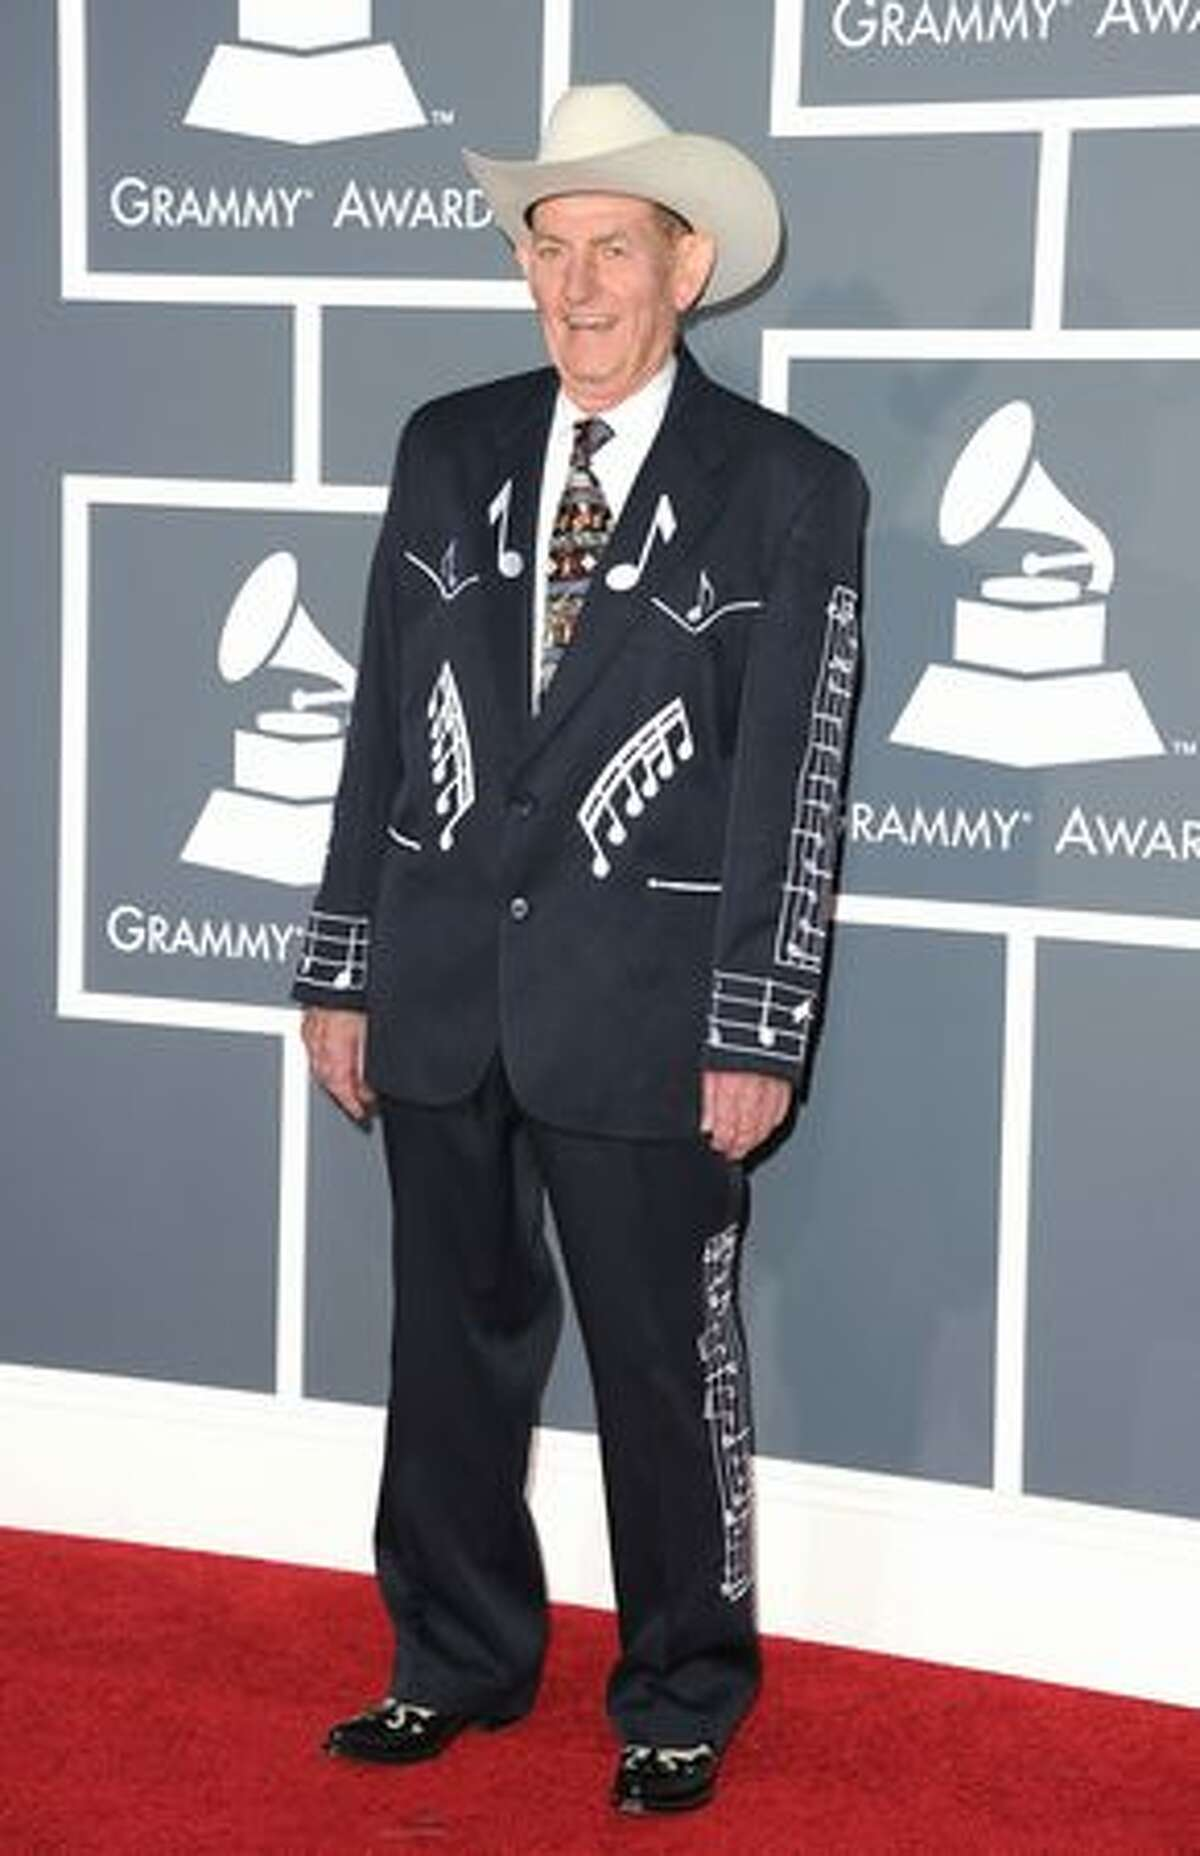 Why is Cajun musician D.L. Menard on this list? Because he knows who he is and where he is. So go ahead and make fun of the jacket and hat, if you want, but if you stop and think about it, this is exactly what a veteran Louisiana guitar player and Cajun songwriter should be wearing to the Grammys.